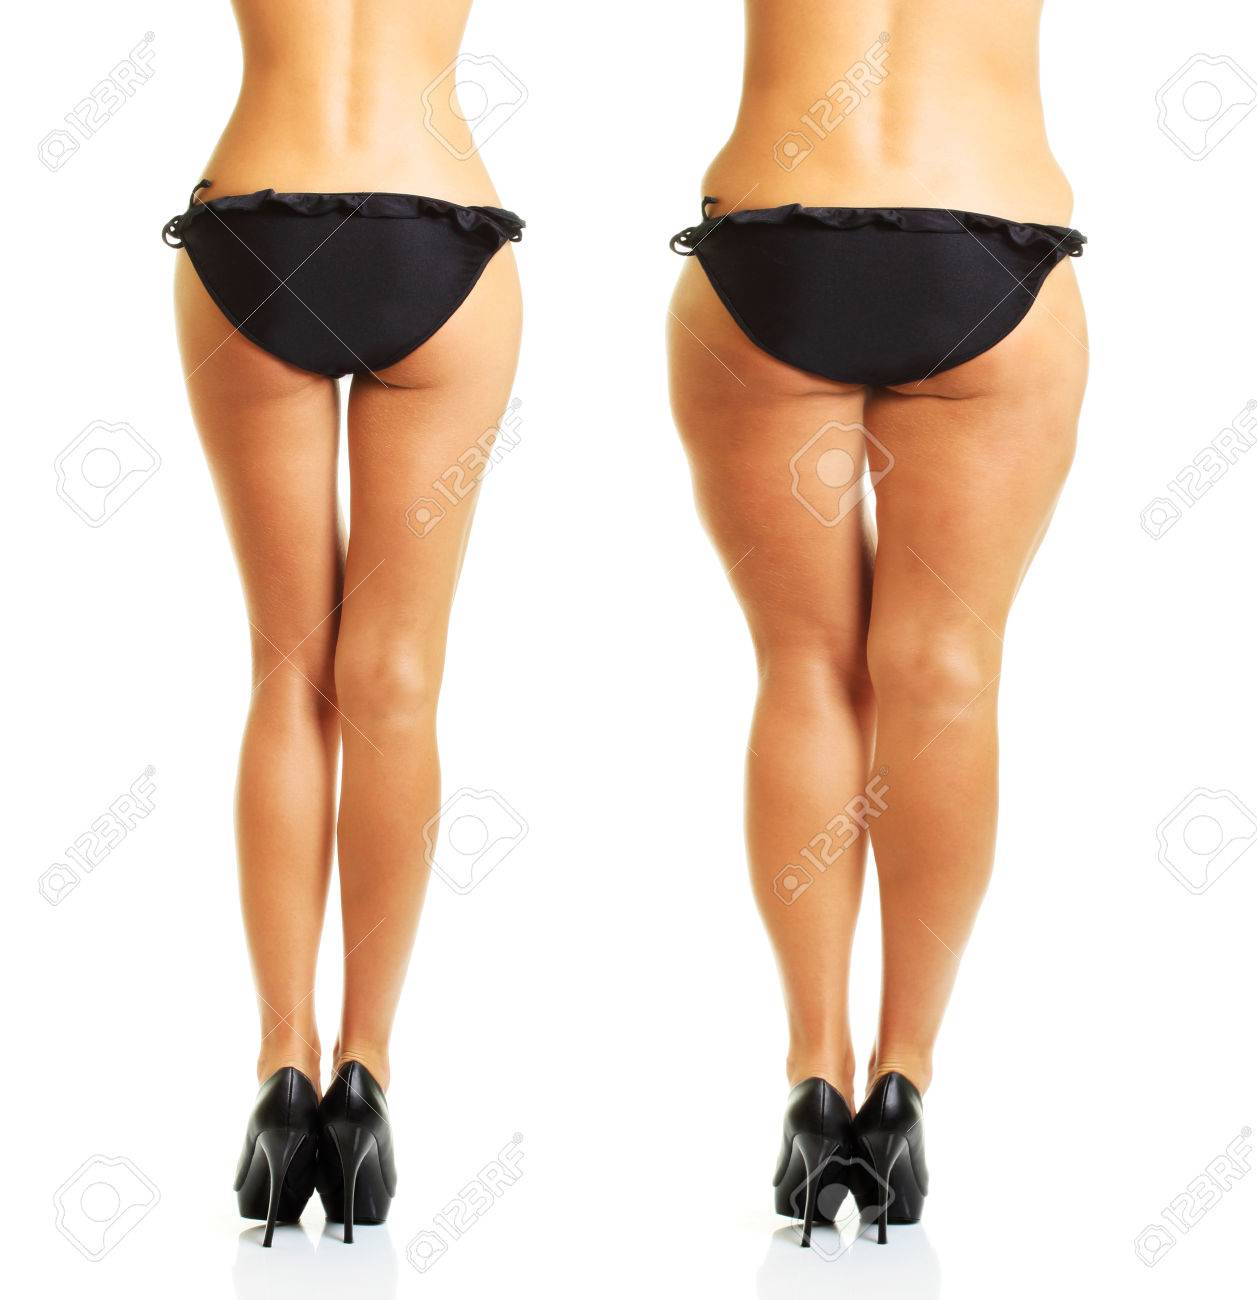 Perfect and fat cellulite woman's body isolated on white background. - 61544437